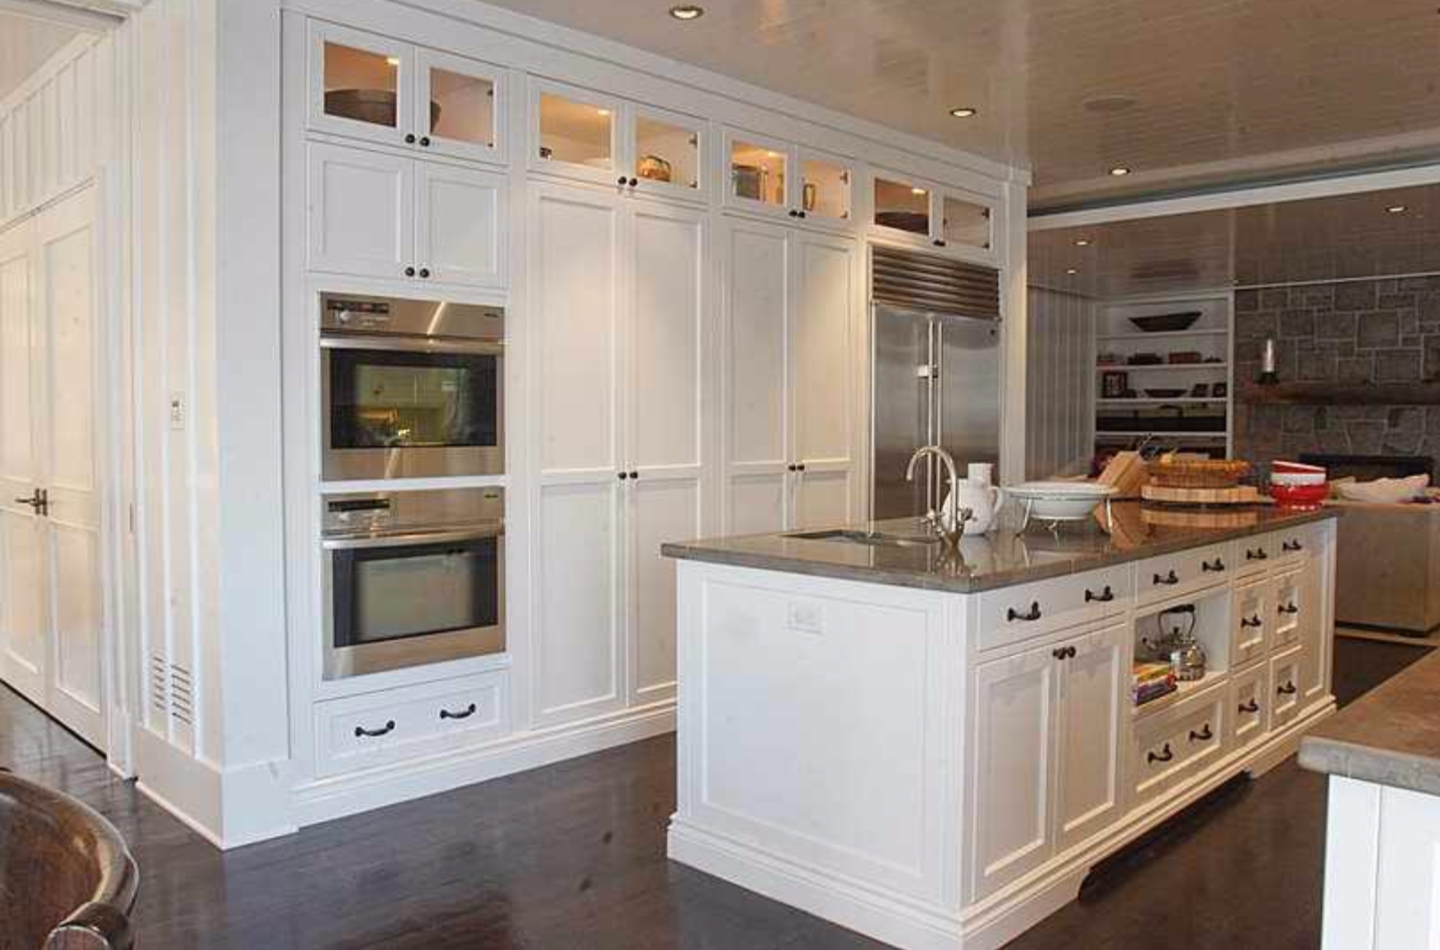 Best Way To Paint Kitchen Cabinets A Step By Step Guide 640 x 480